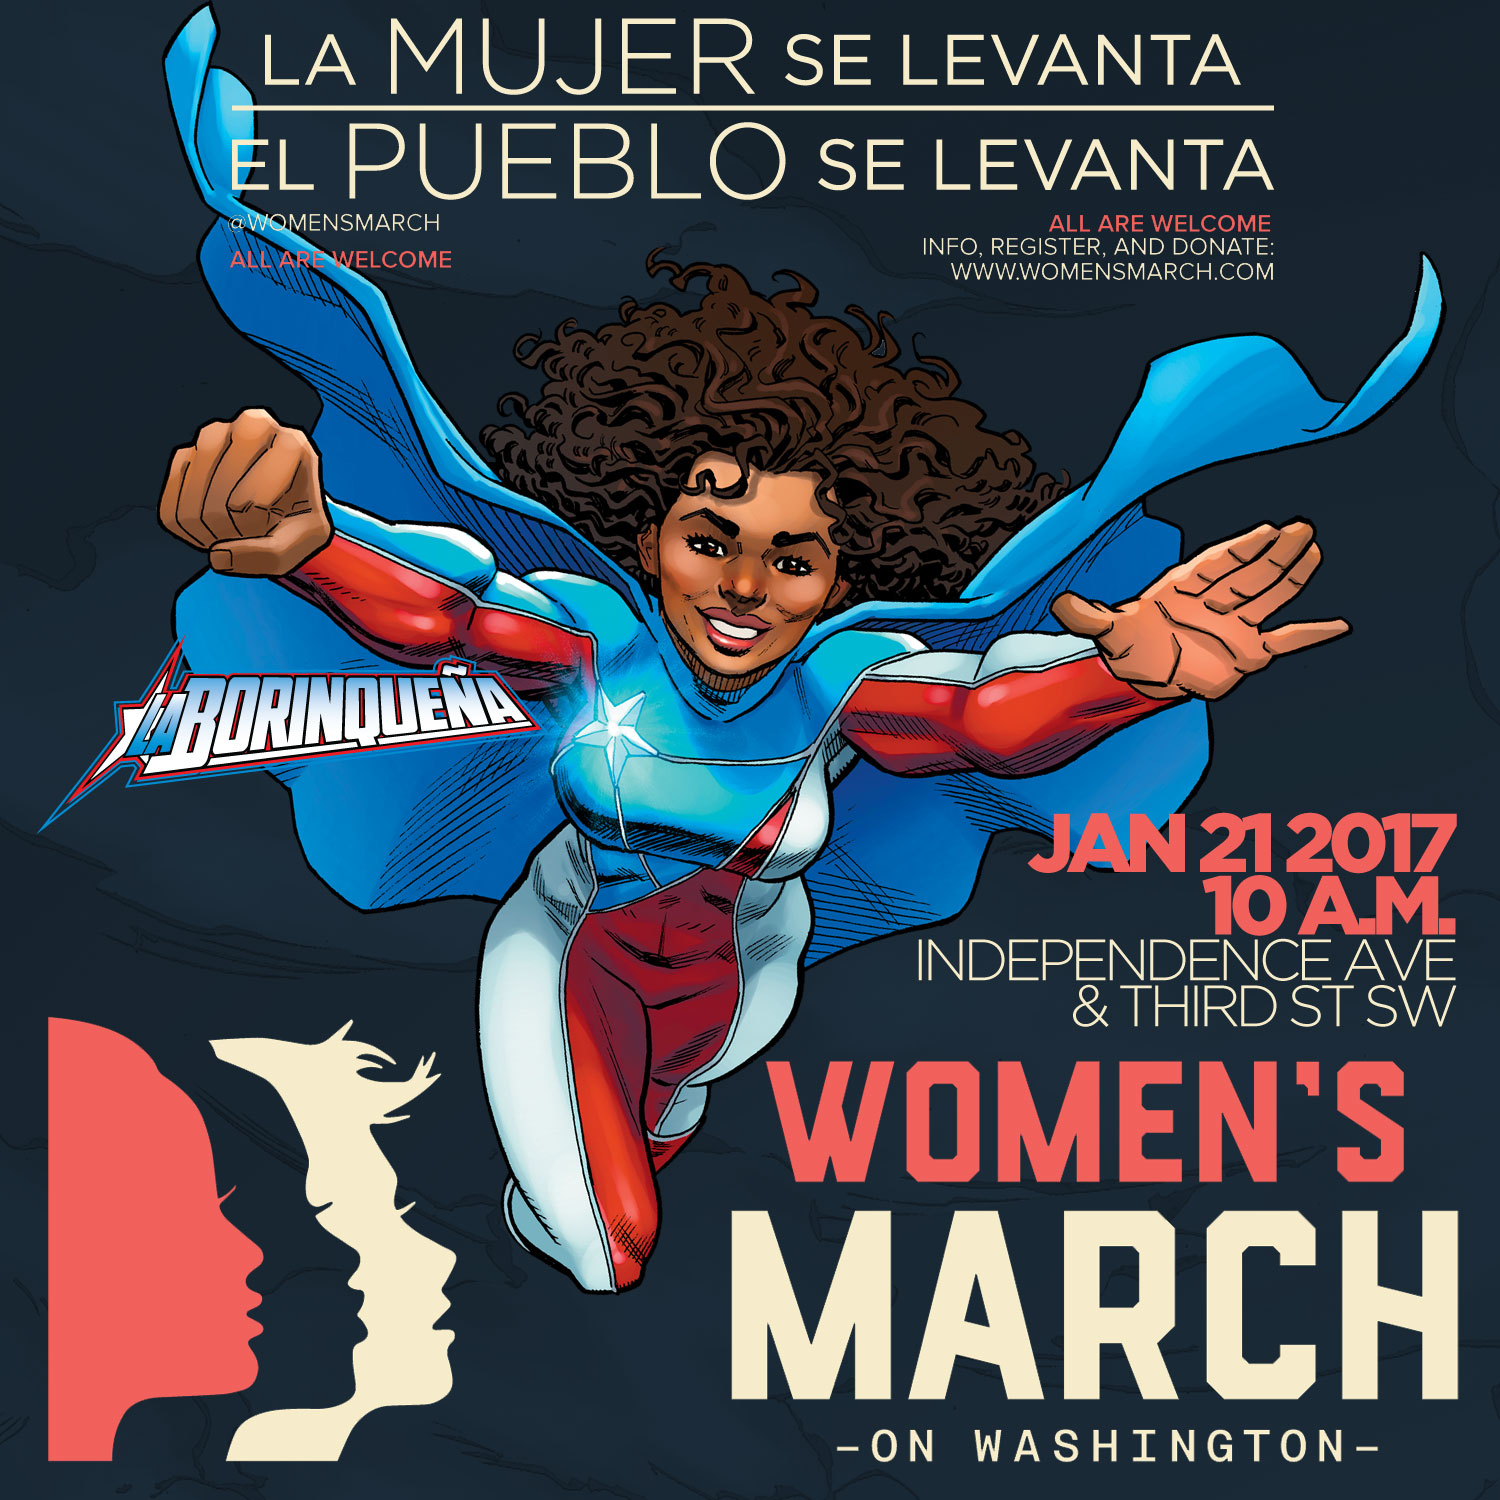 LaBorinqueña_WomensMarch2 (2)